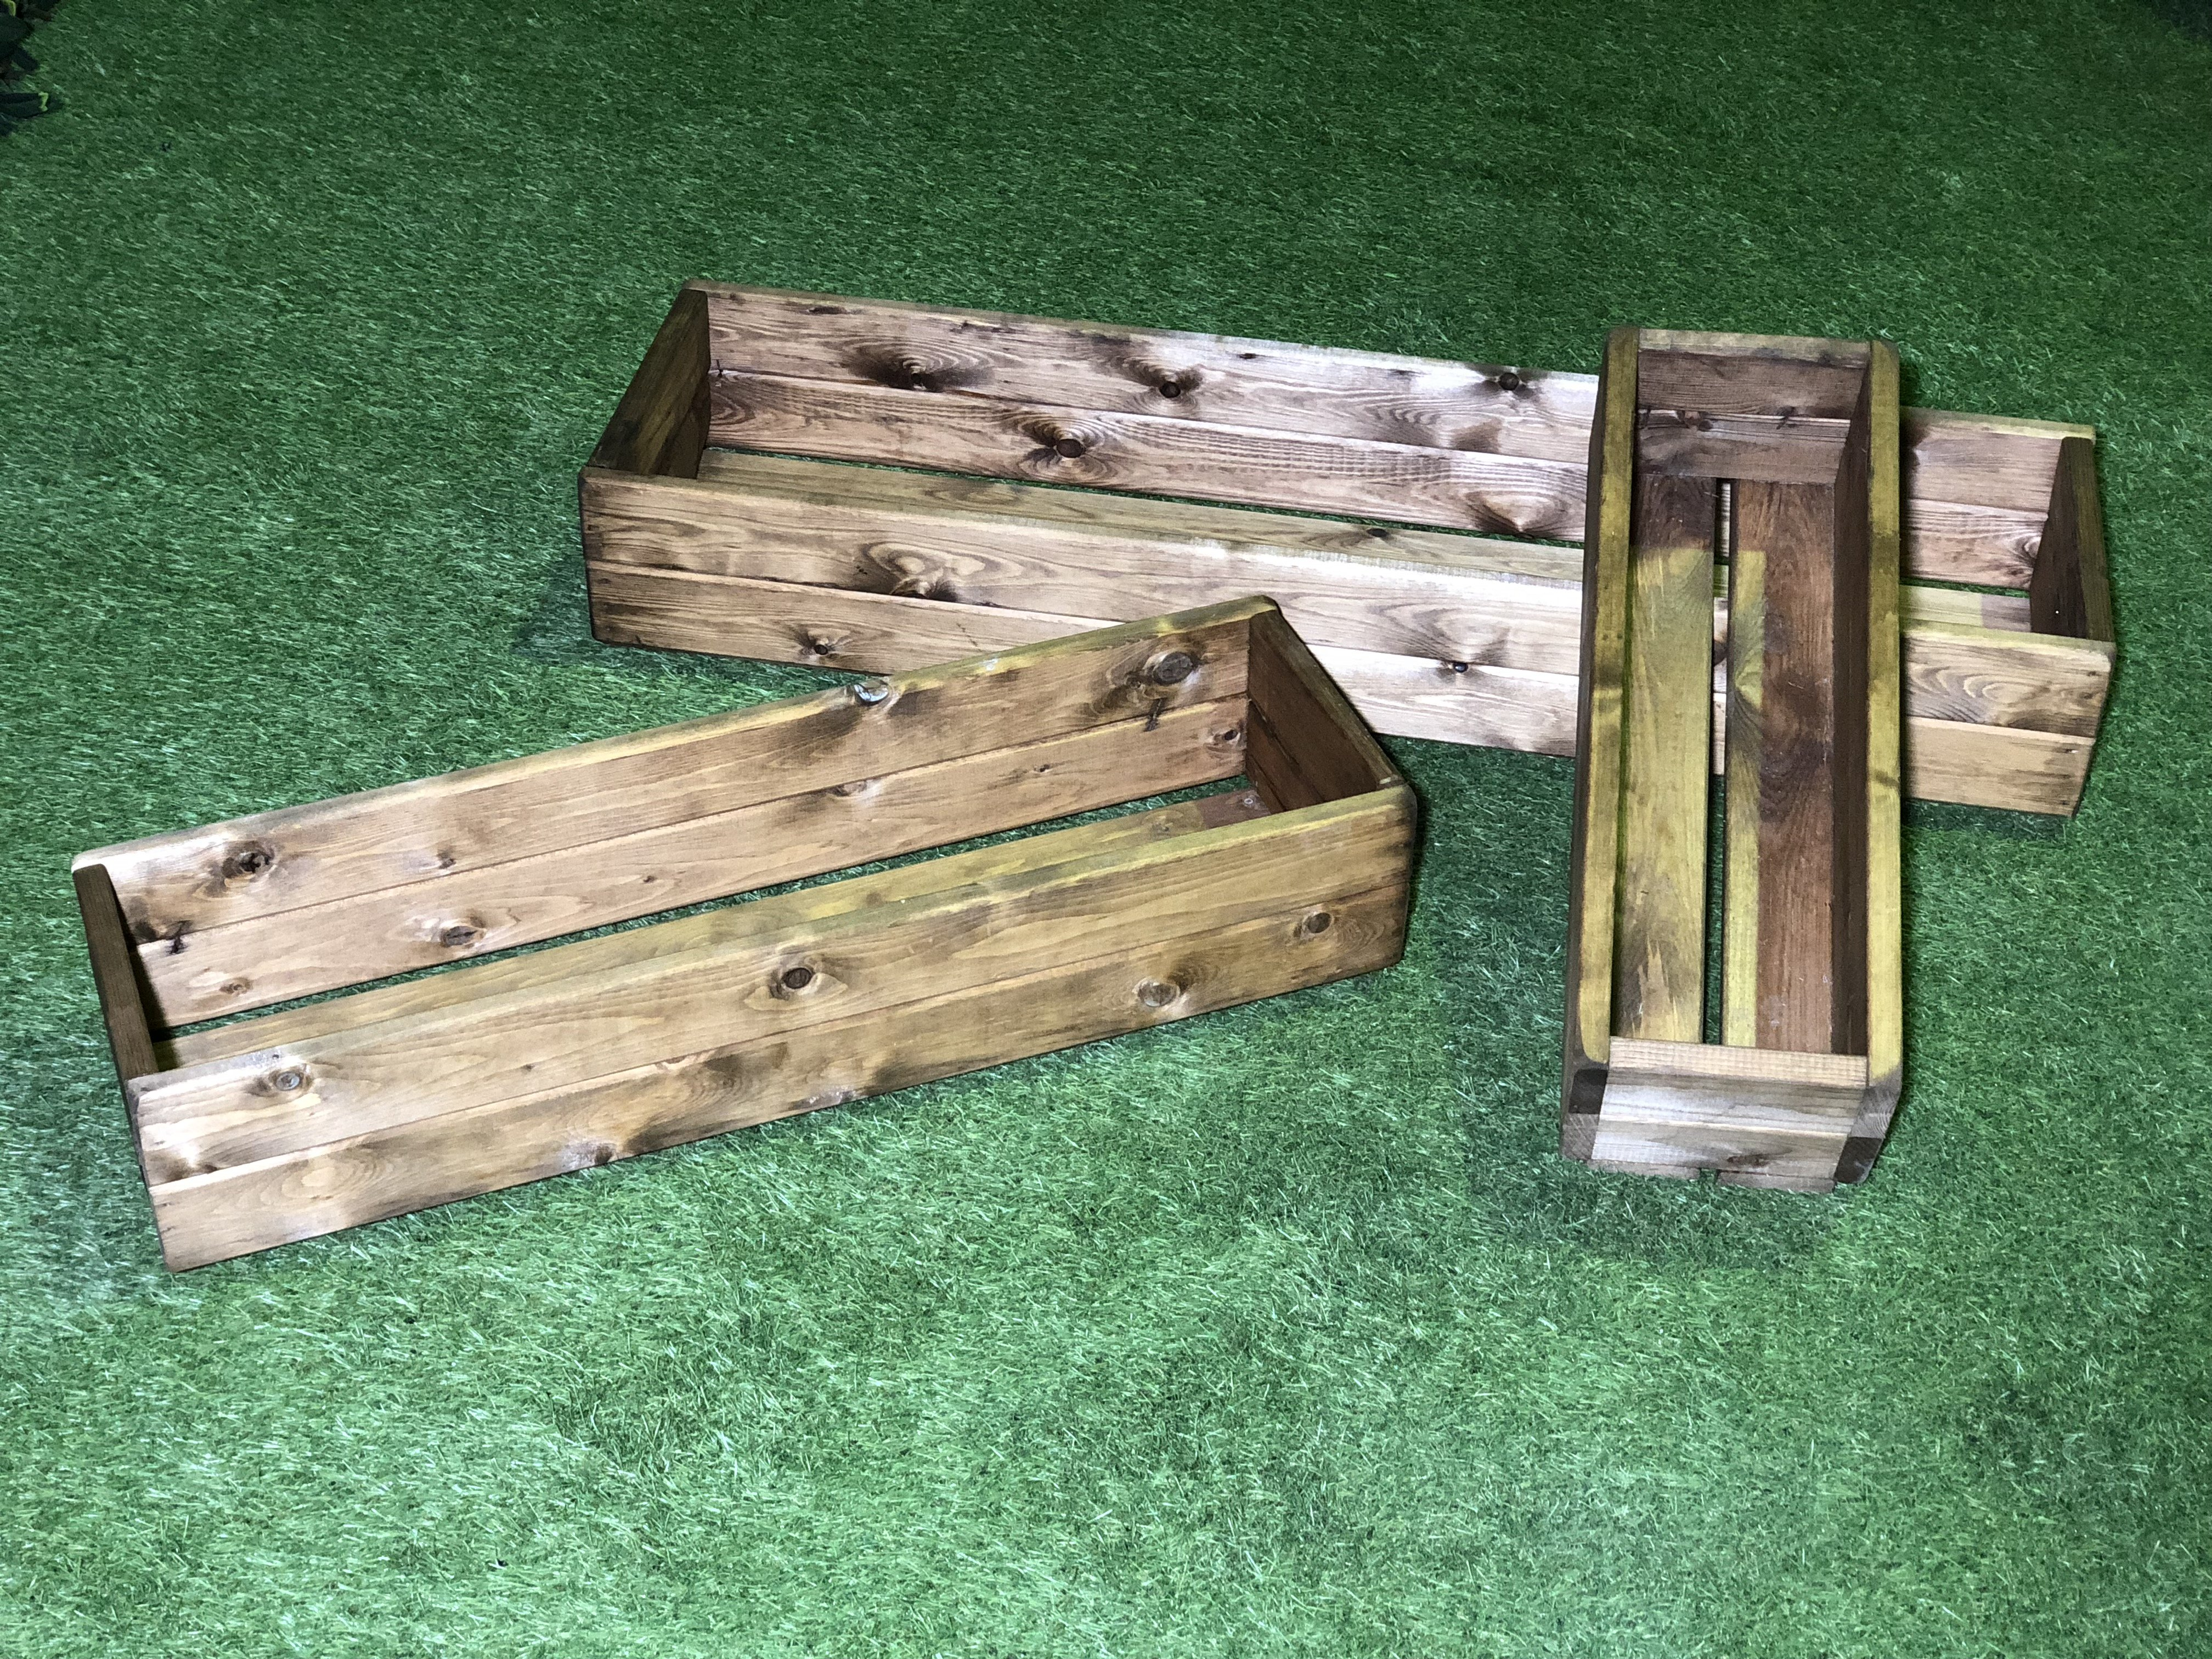 Set Of 3 Wooden Tables: High Quality Stained Wooden Planters